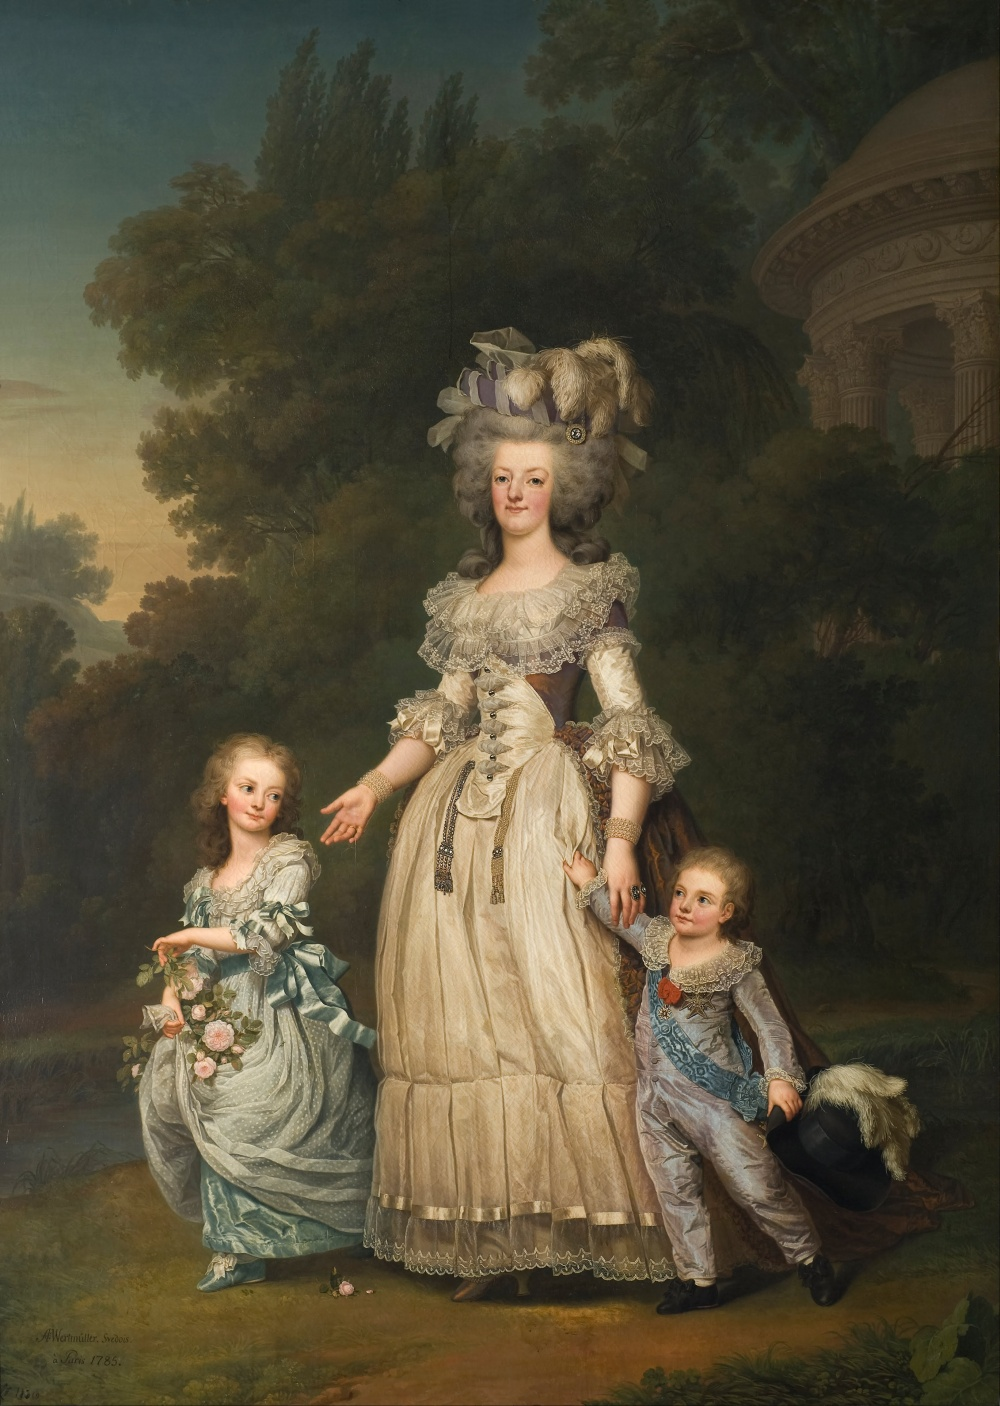 Adolf_Ulrik_Wertmüller_-_Queen_Marie_Antoinette_of_France_and_two_of_her_Children_Walking_in_The_Park_of_Trianon_-_Google_Art_Project